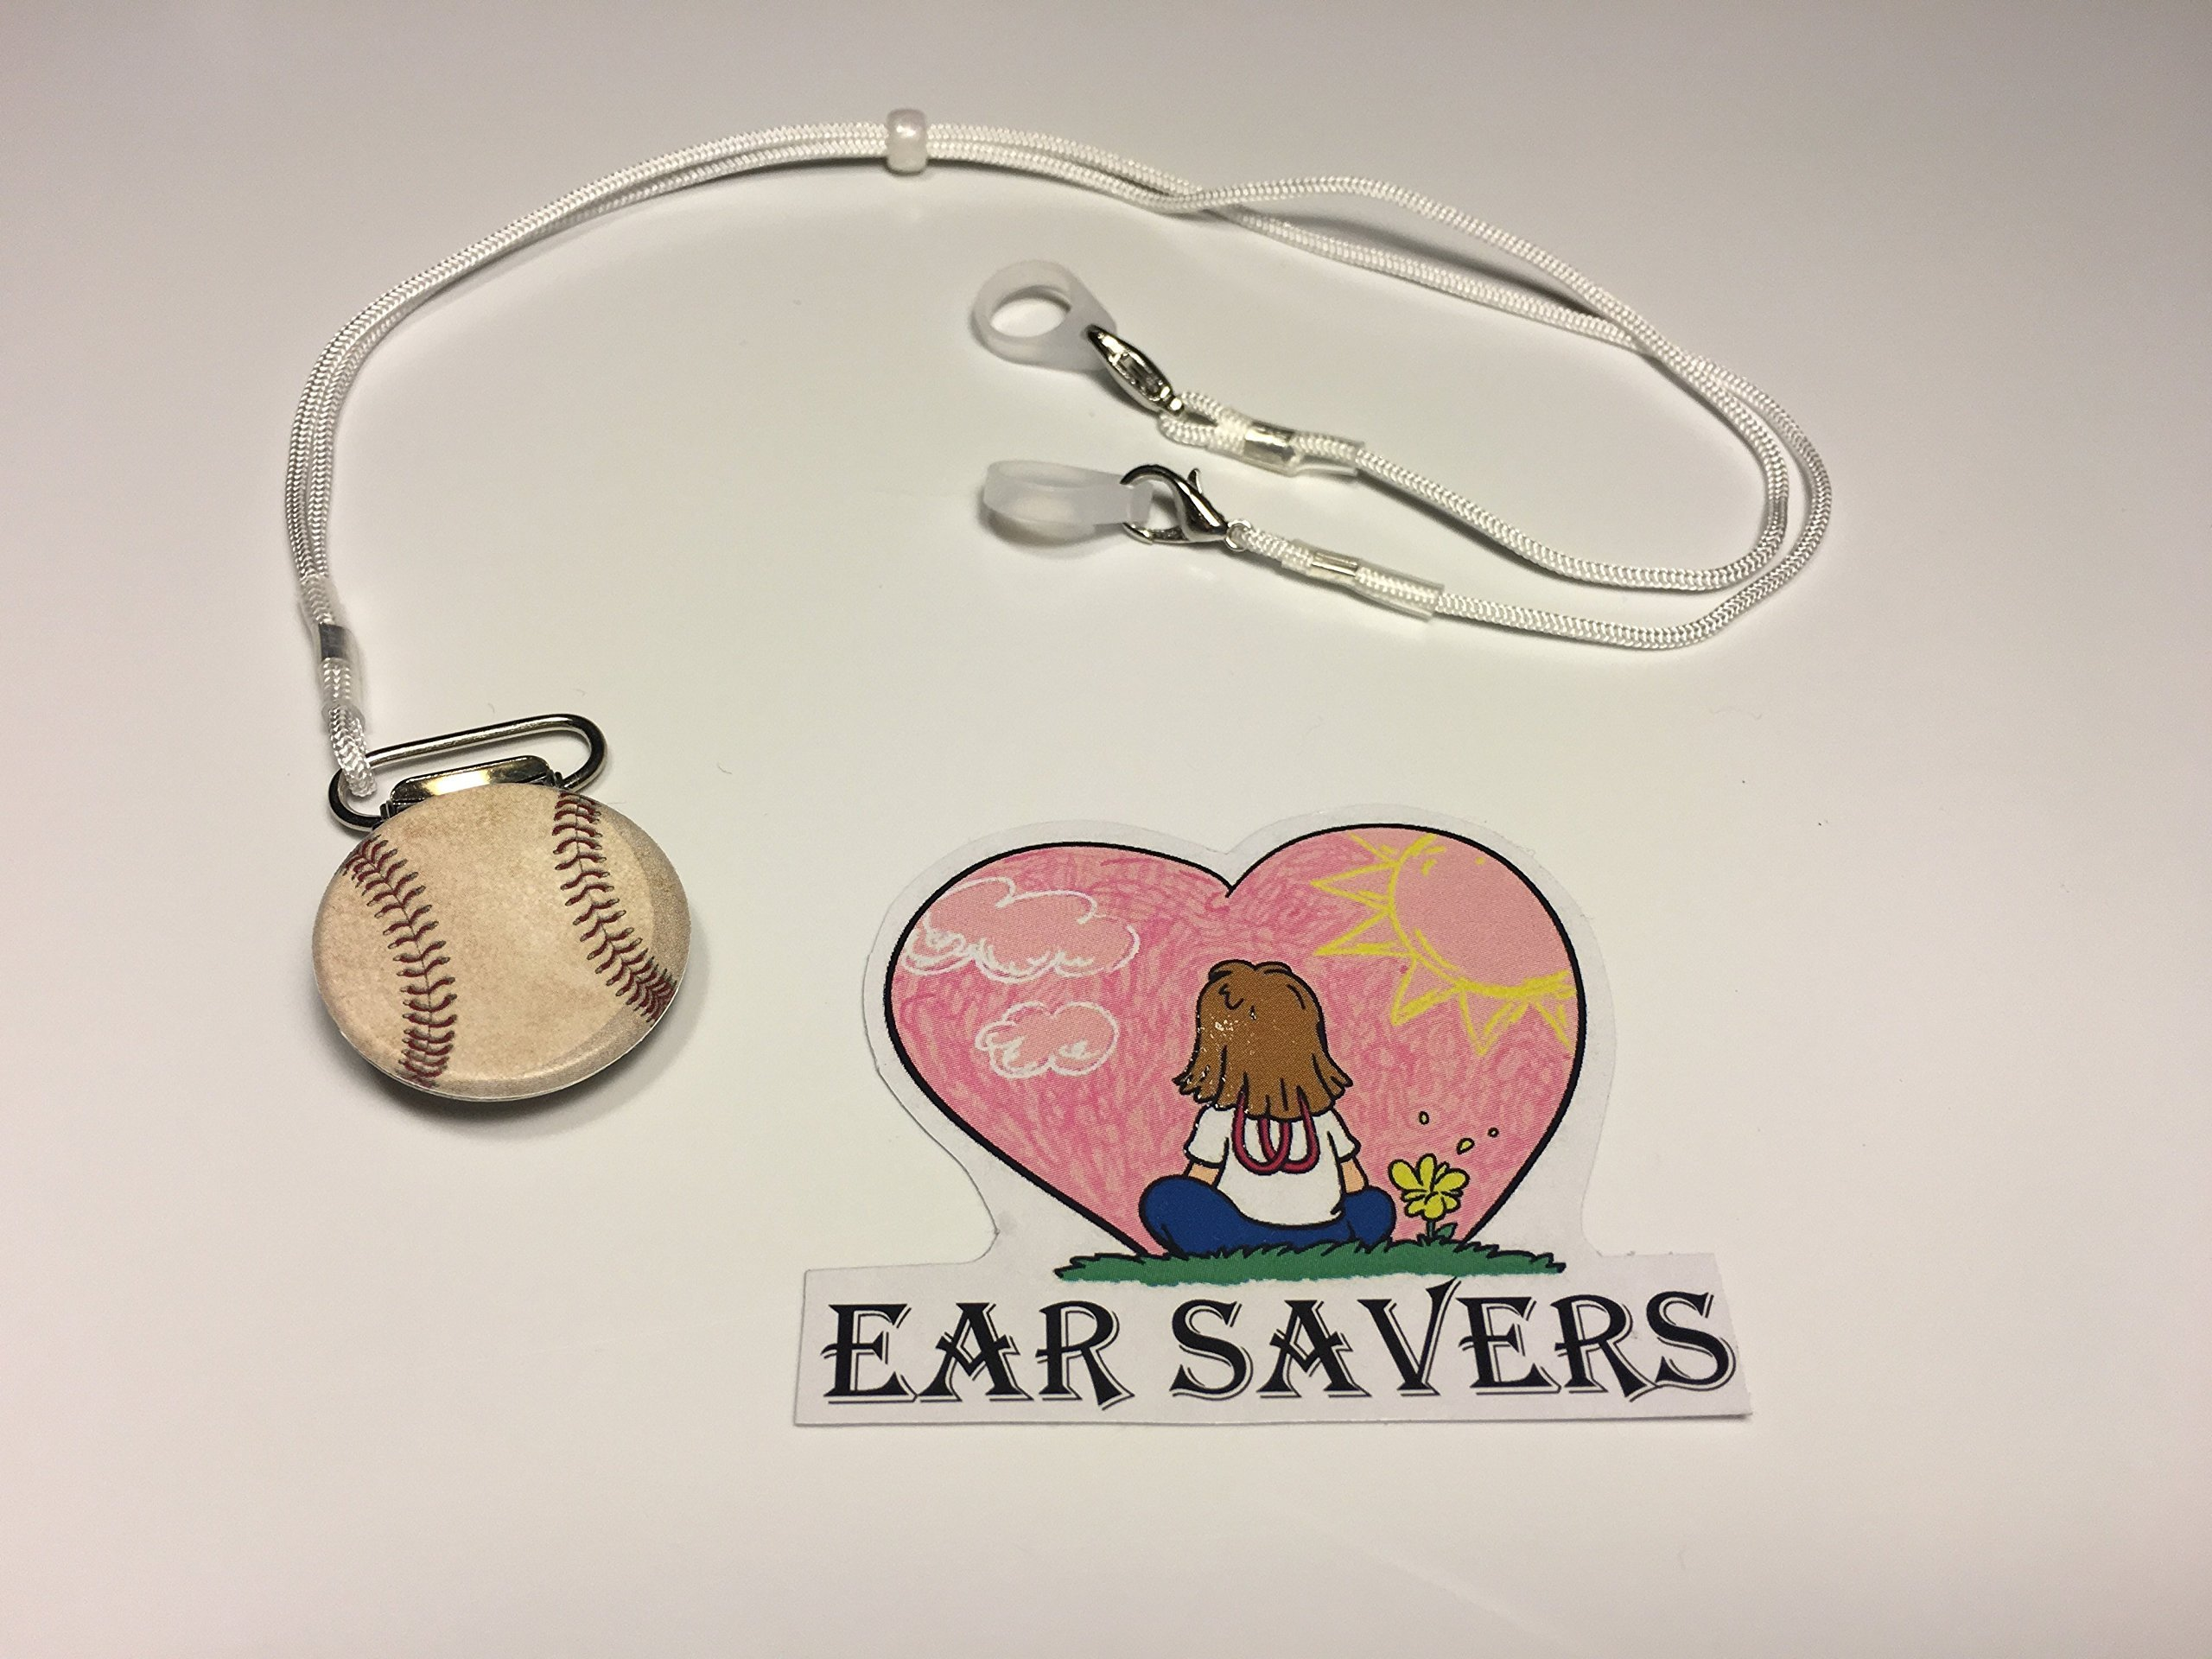 Bilateral Baseball Lanyard Clip for Hearing Aids or Cochlear Implants